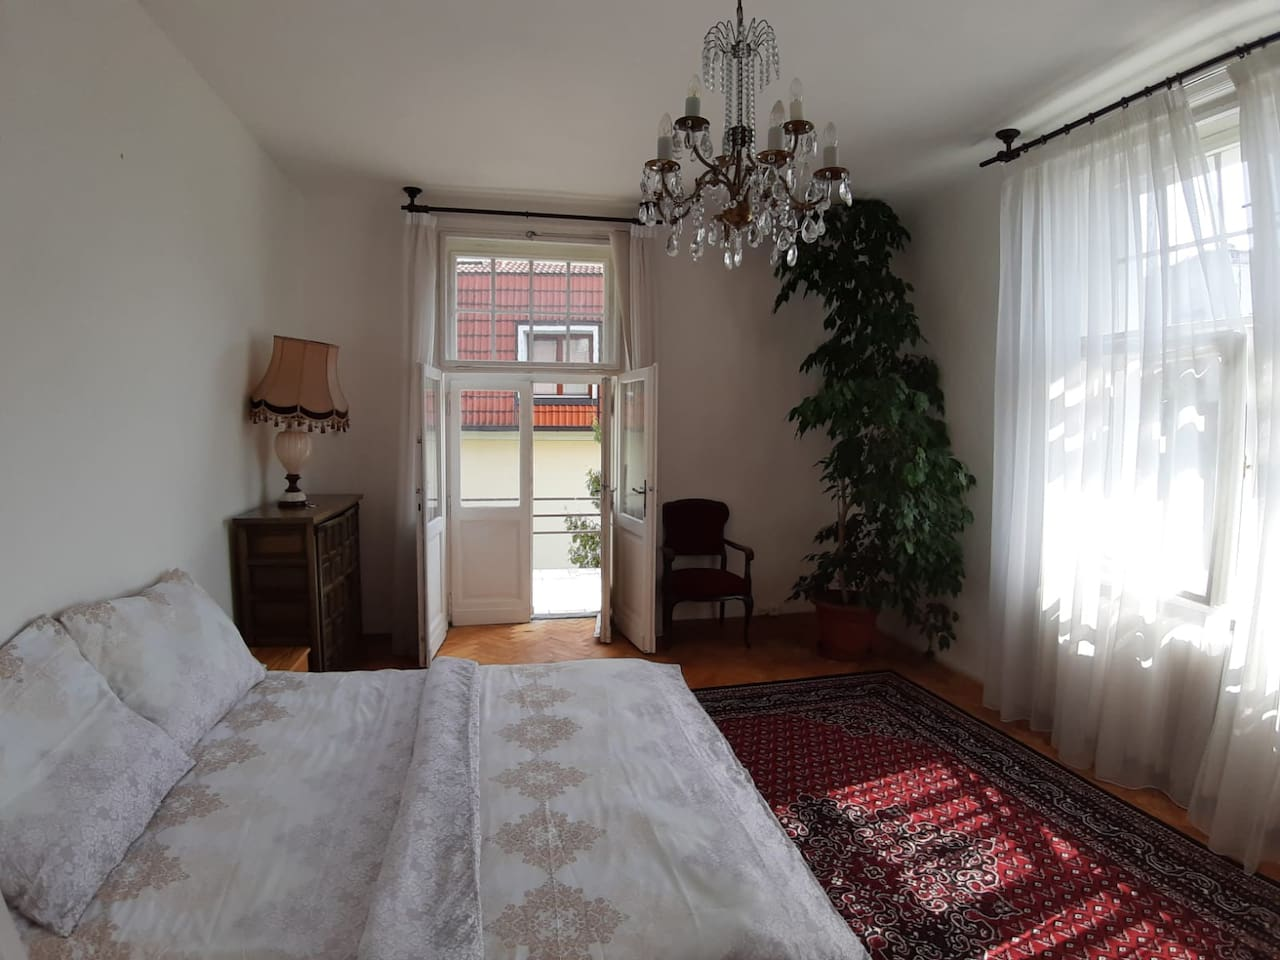 Studio Apartment in Large Villa.  queen size bed with two additional single beds on request.  Private bathroom and kitchen.  Lots of light and a private balcony